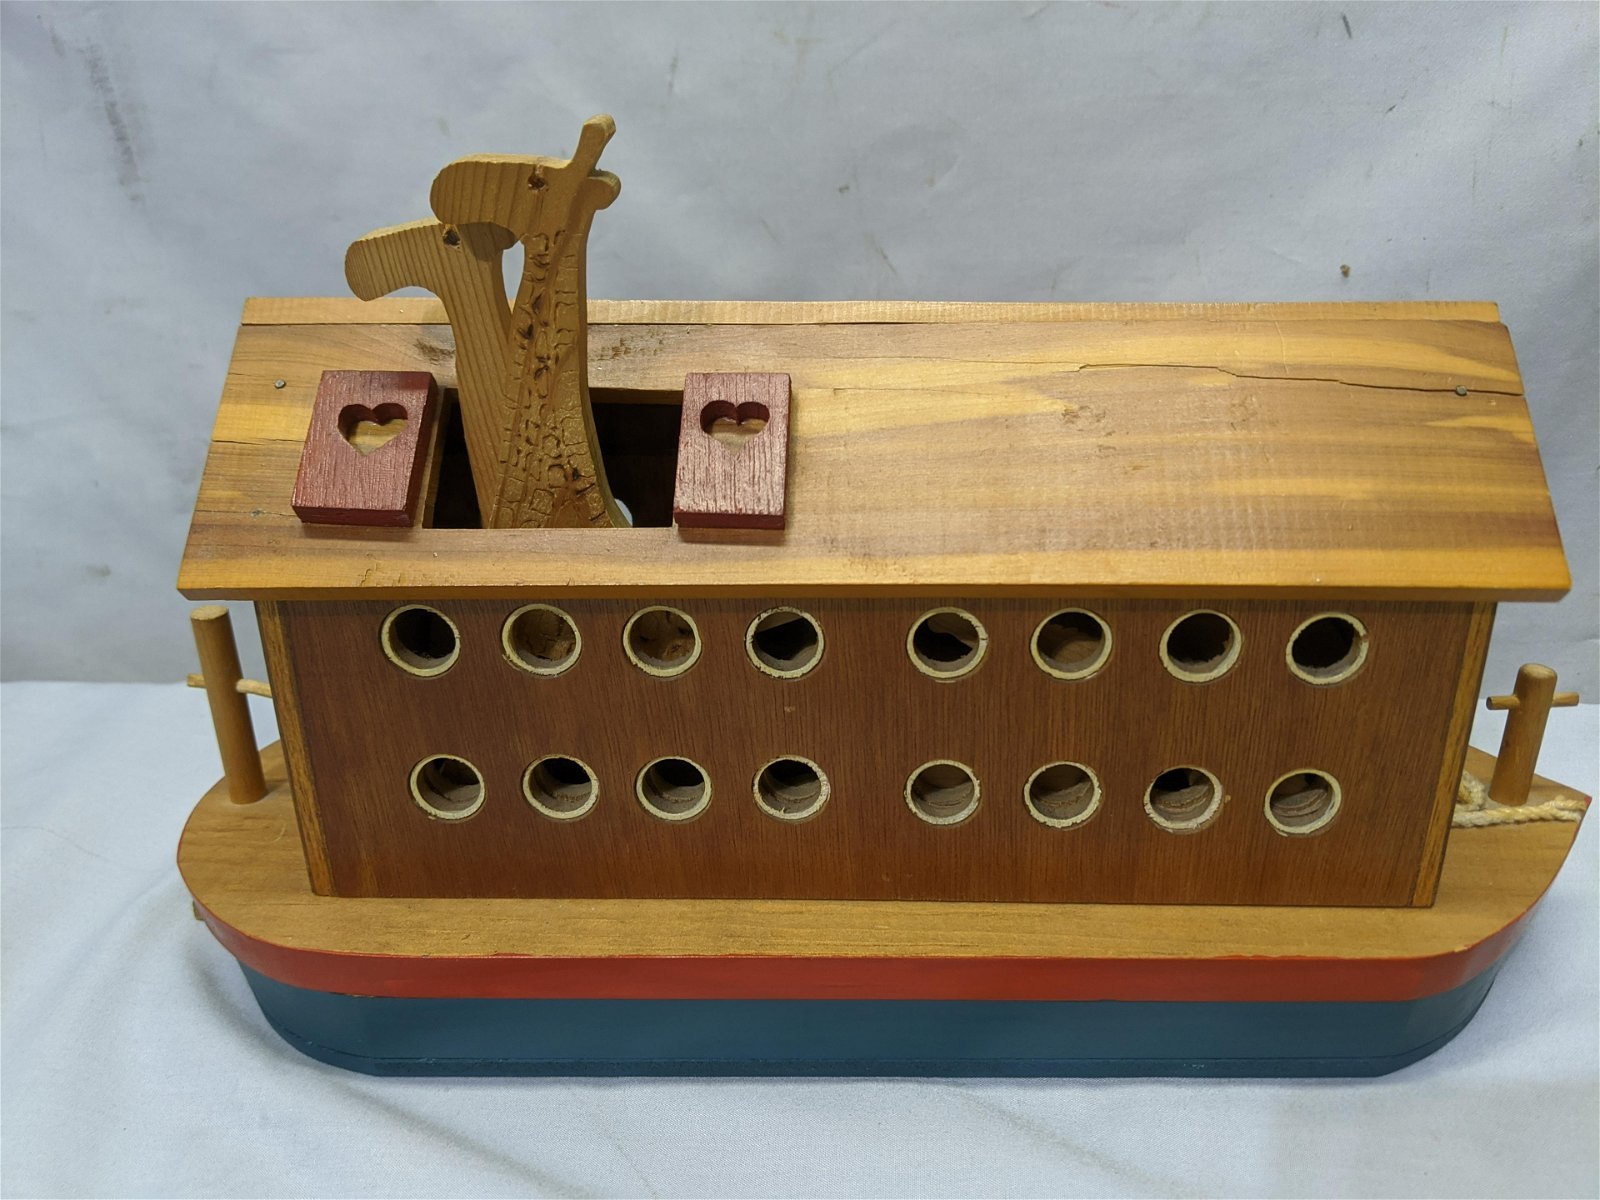 Vintage Noah's Ark Wooden Toy Ship w/ Animal Blocks